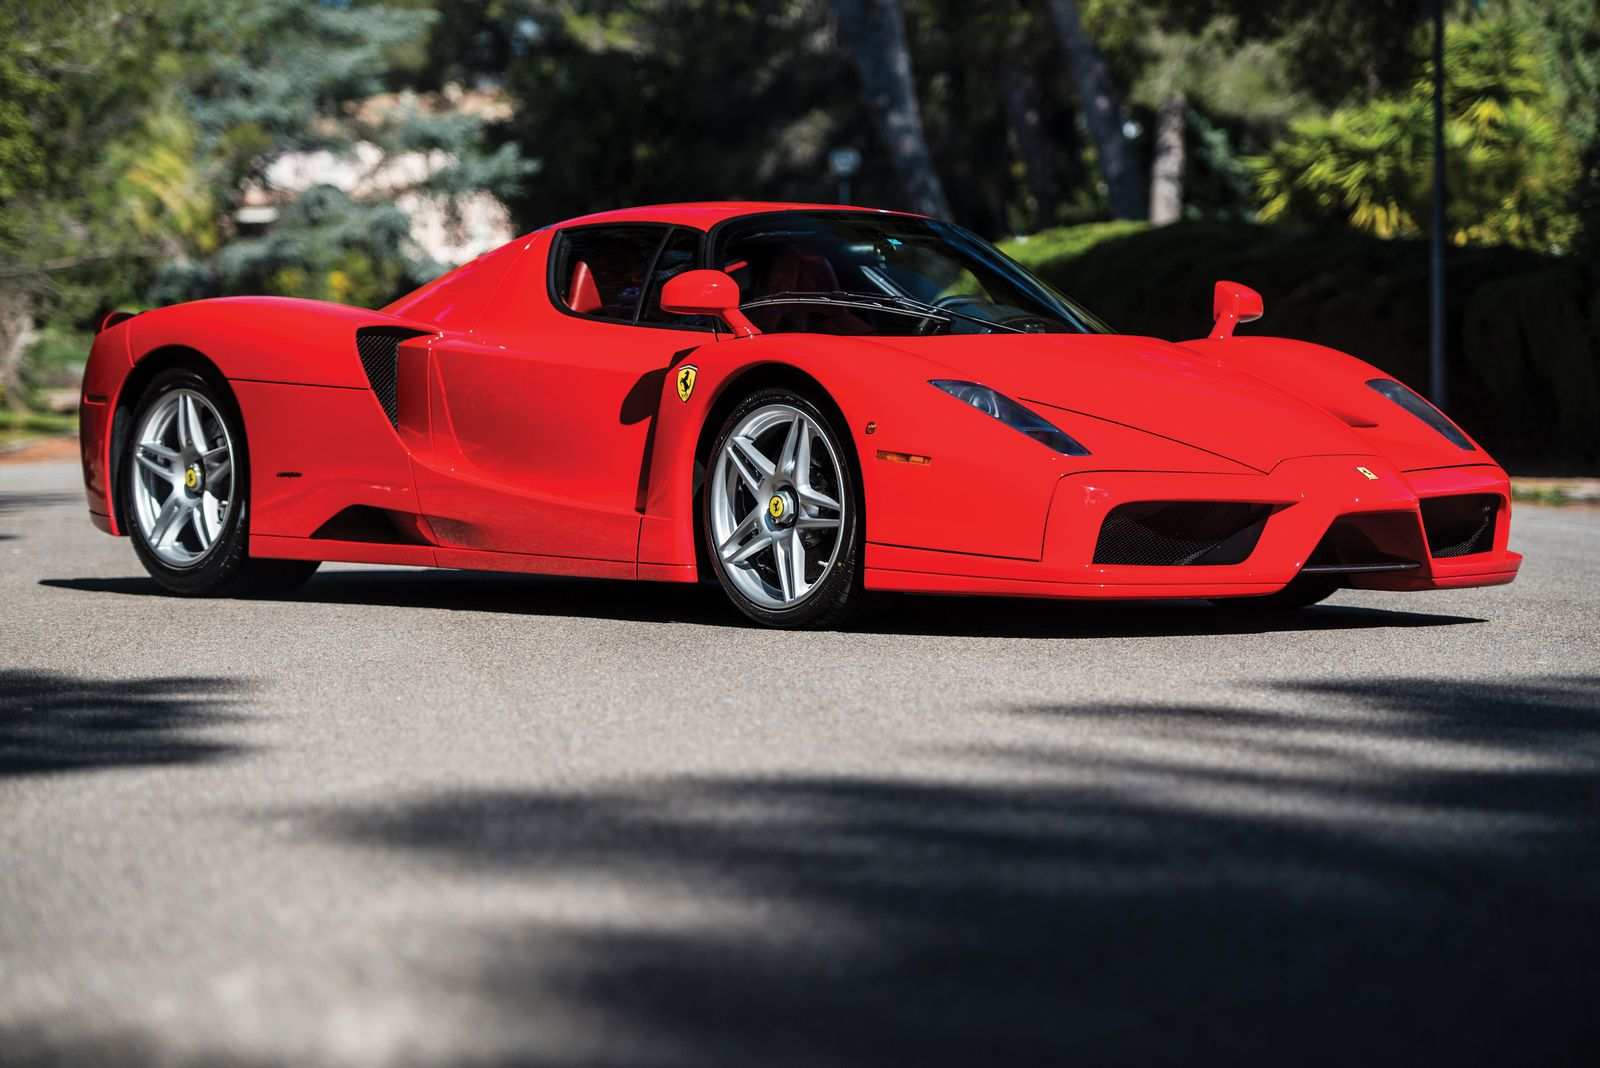 Mercedes San Francisco >> Unique Rosso Scuderia Ferrari Enzo To Be Auctioned In May | Carscoops